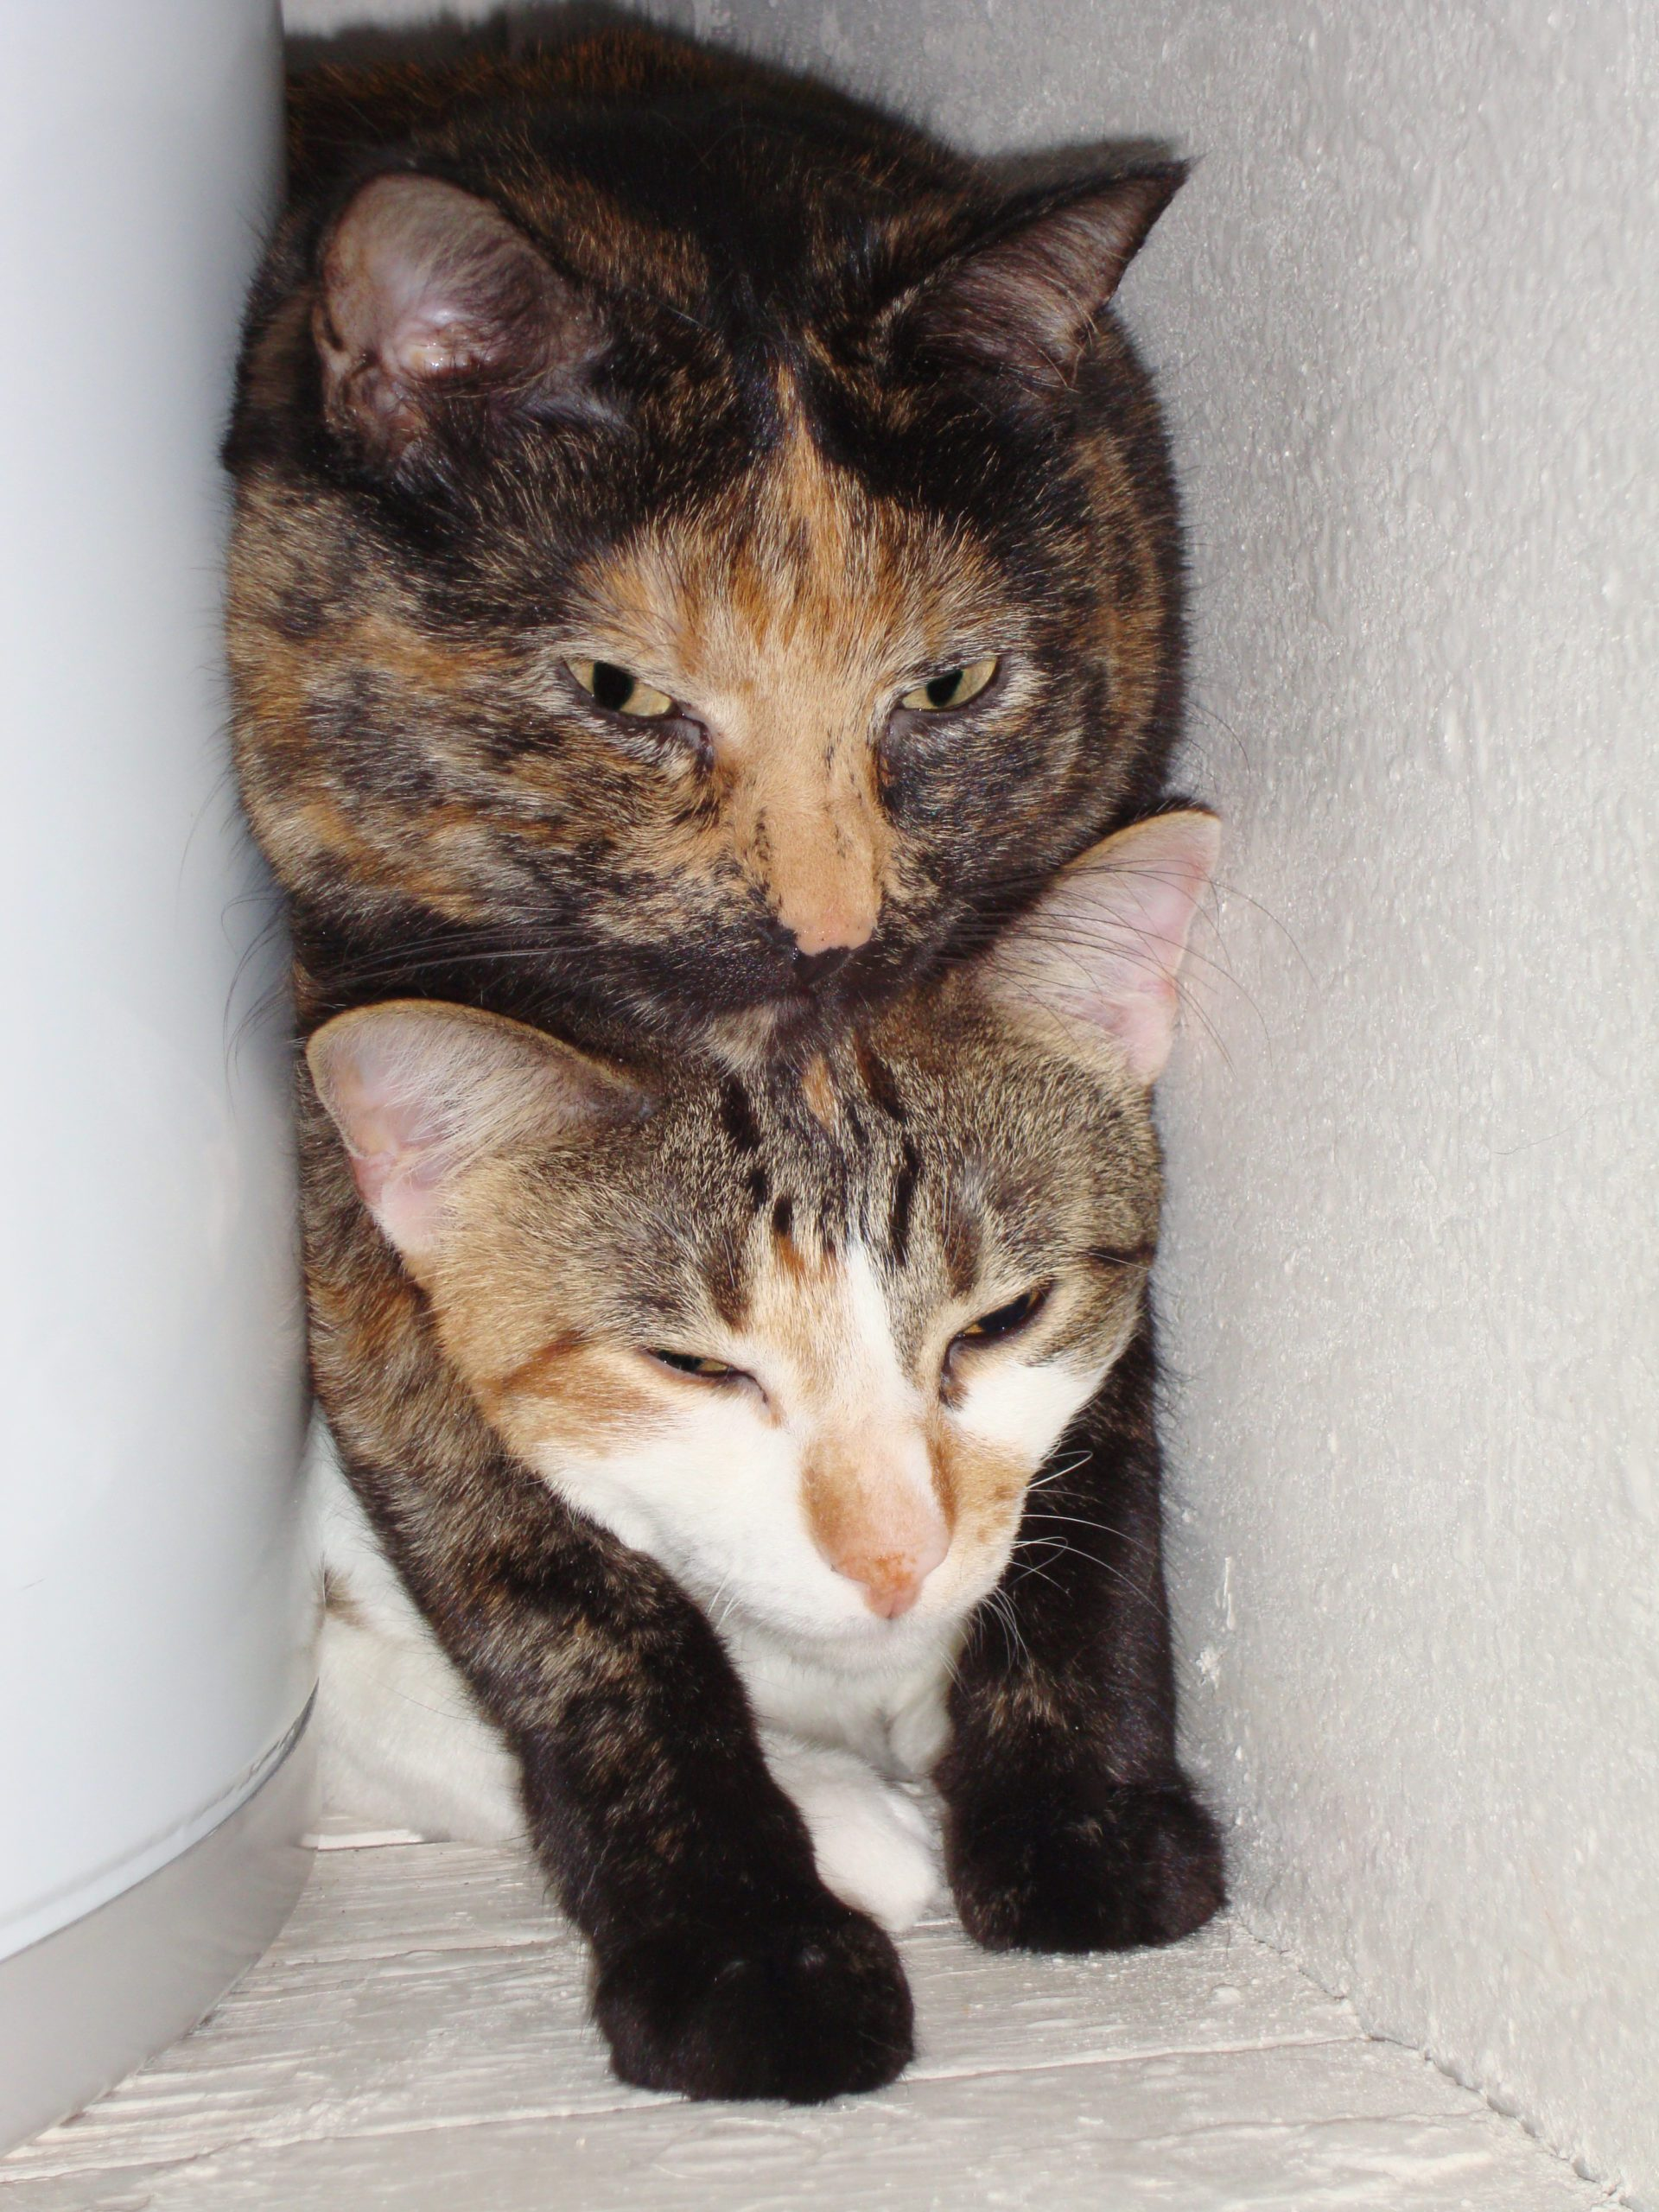 two cats, one on top of the other, squished in a small space